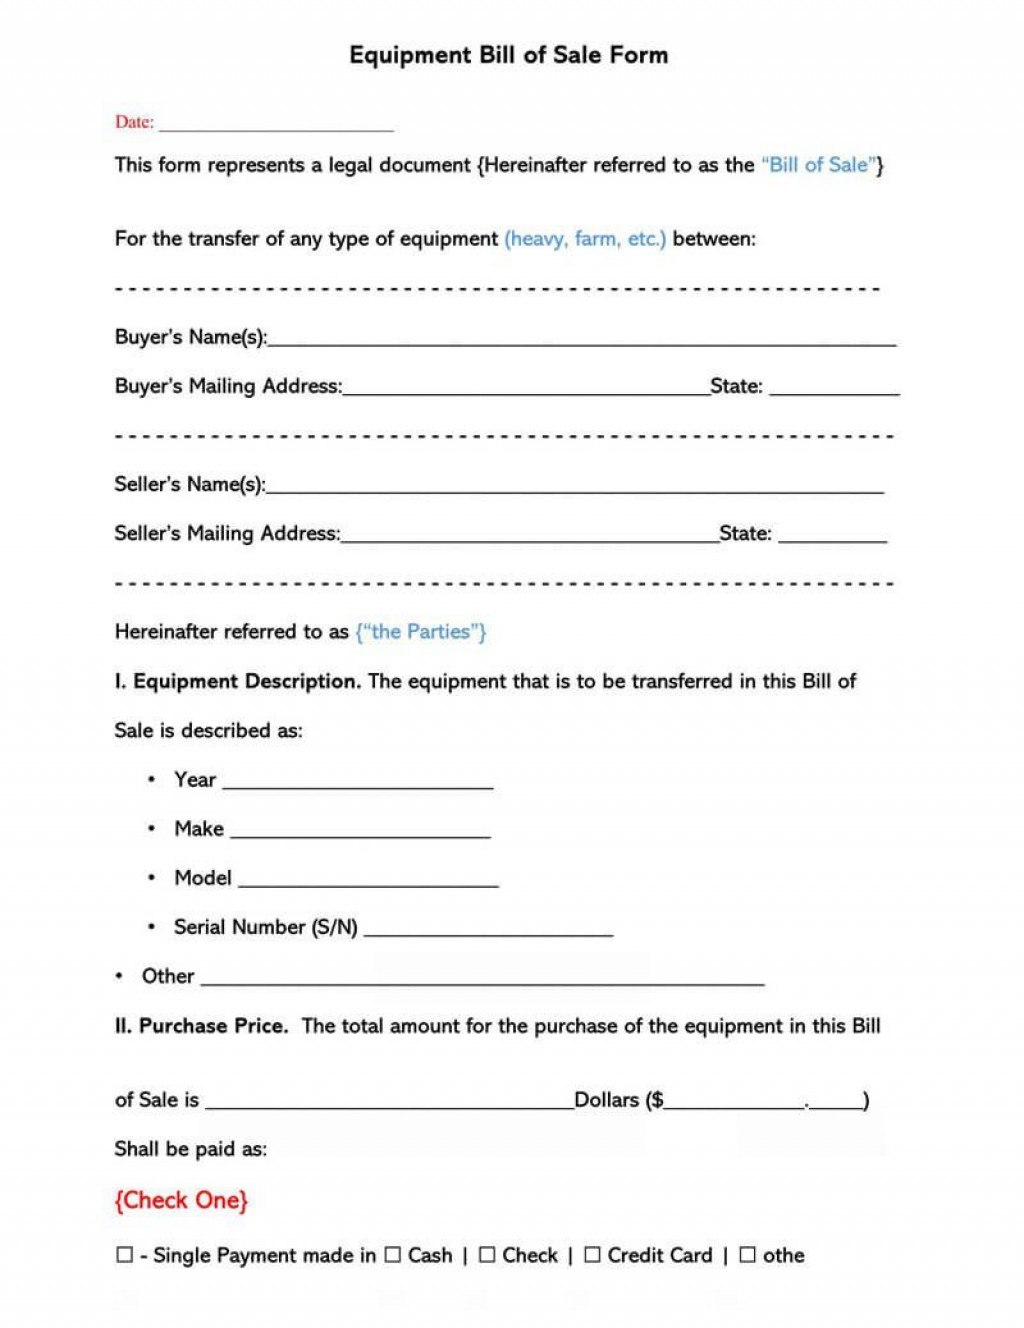 002 Striking Equipment Bill Of Sale Form Design  Forms Word Document Alberta Simple TemplateLarge